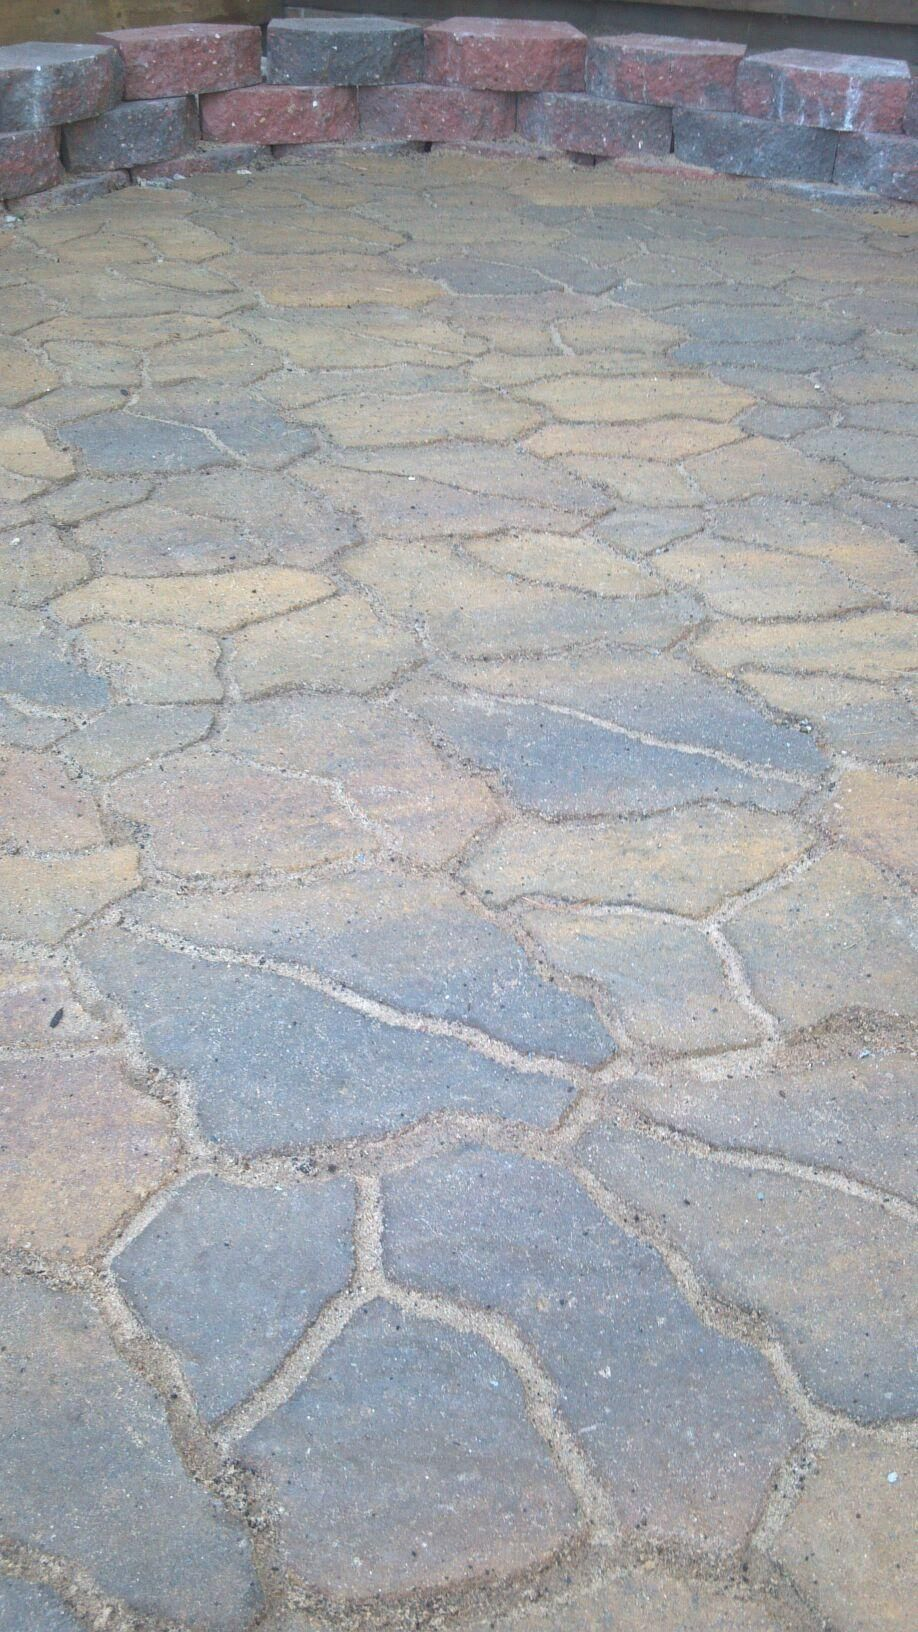 Siena Flagstone Pavers From Menards Very Easy To Install Be Sure To Use Locking Sand And Gst Sealer Flagstone Pavers Landscape Projects Yard Remodel